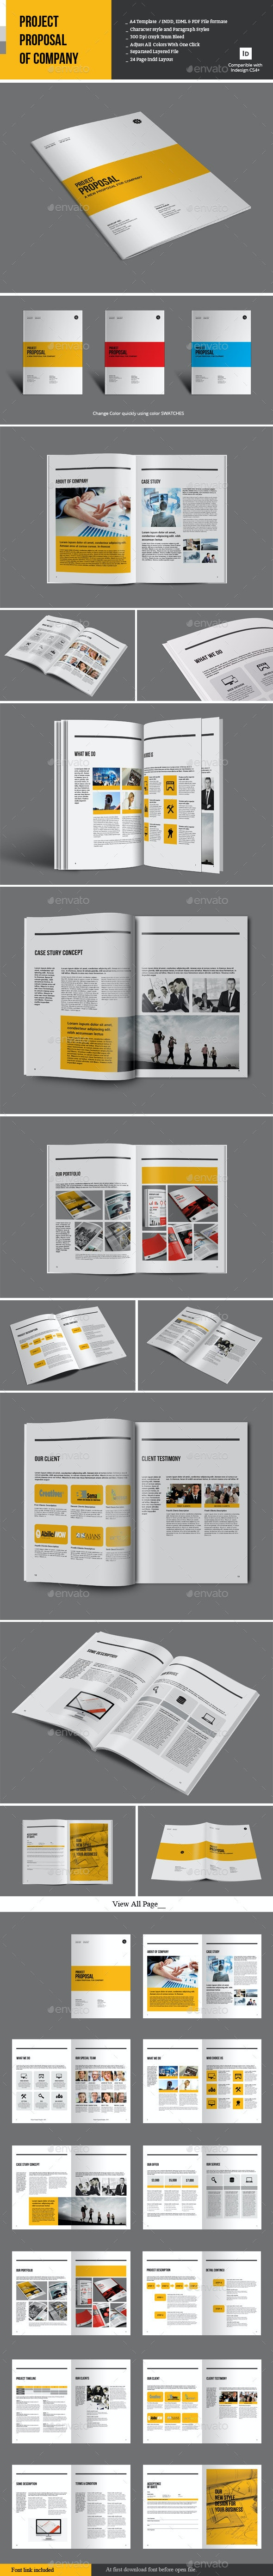 Project Proposal of Company - Proposals & Invoices Stationery